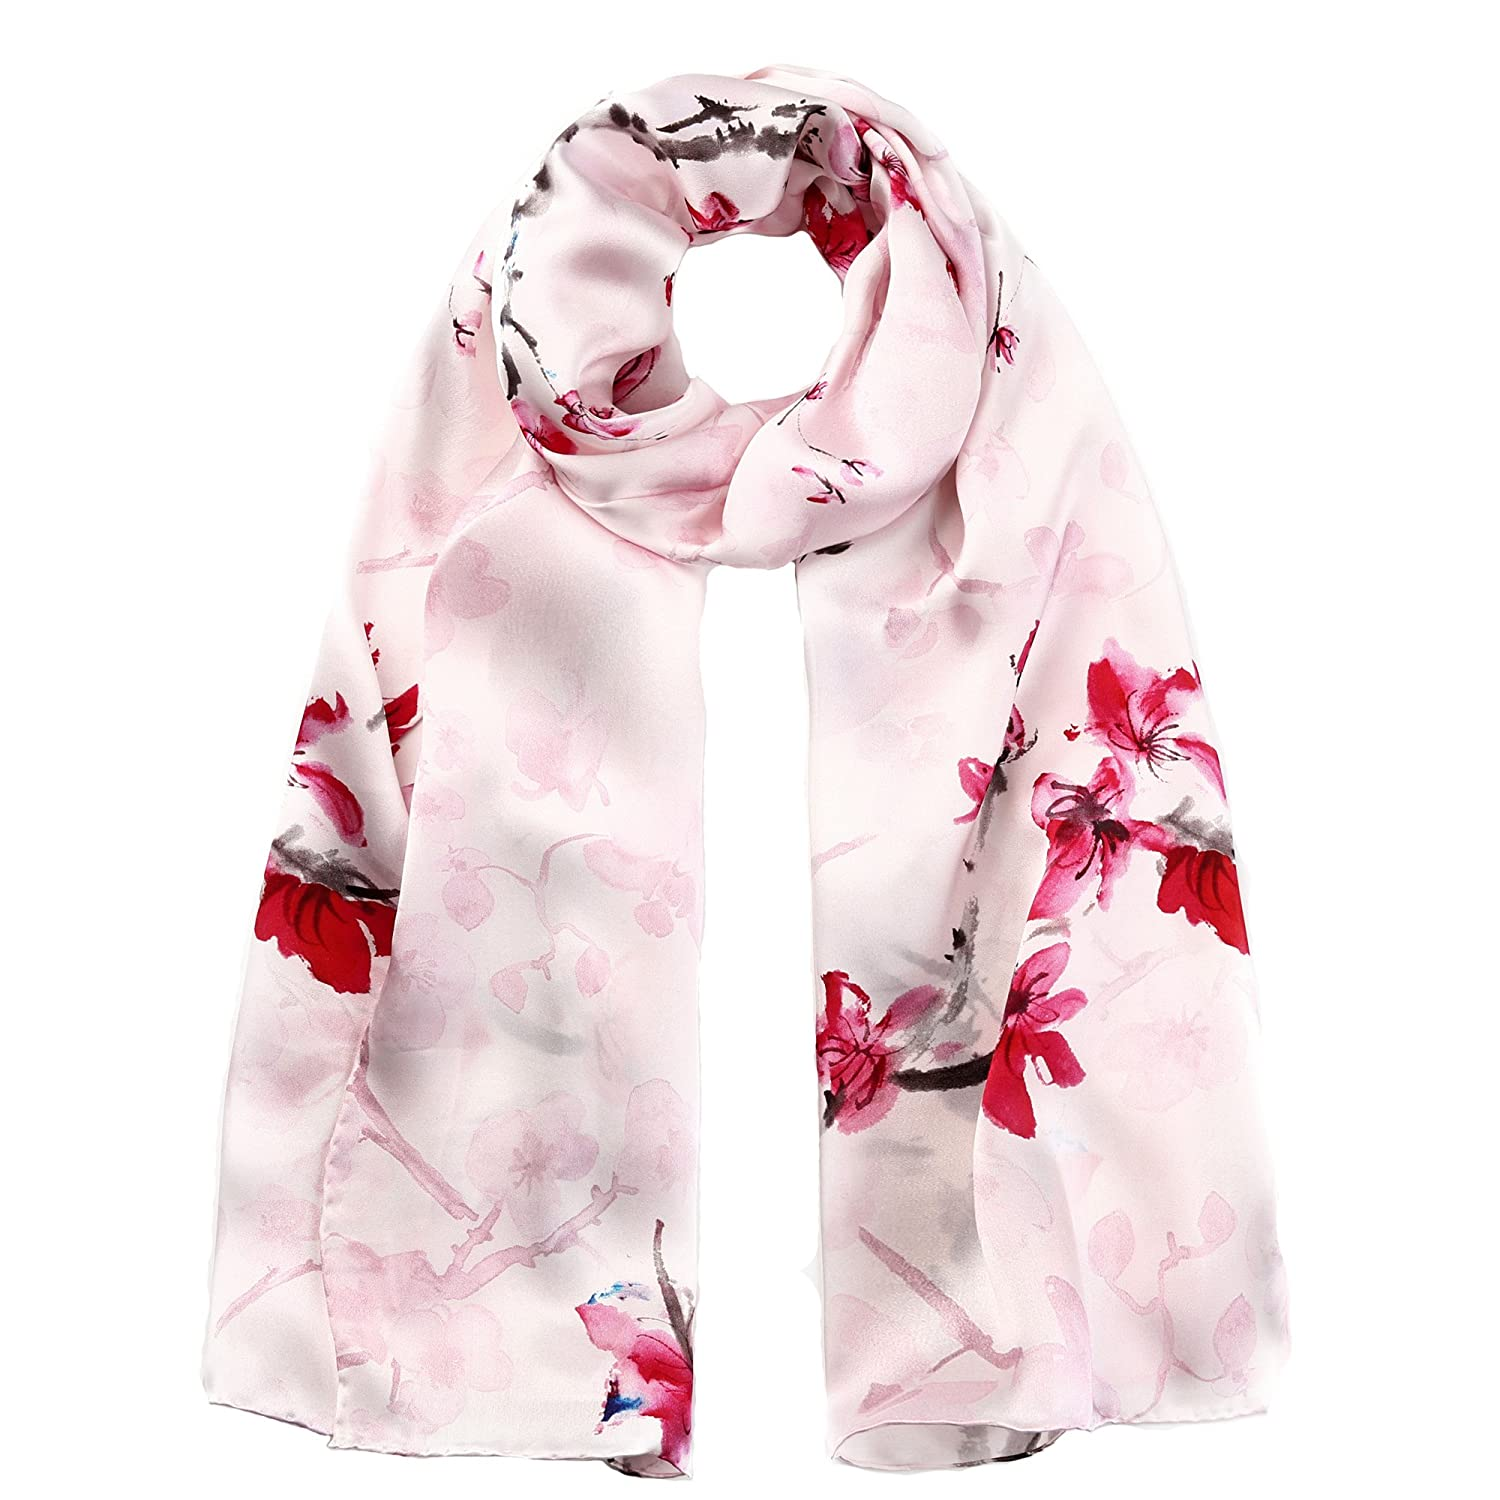 STORY OF SHANGHAI Womens 100% Natural Mulberry Silk Scarf Multi-use Floral Satin Scarves Luxury Gifts for Ladies DFCY05C1011